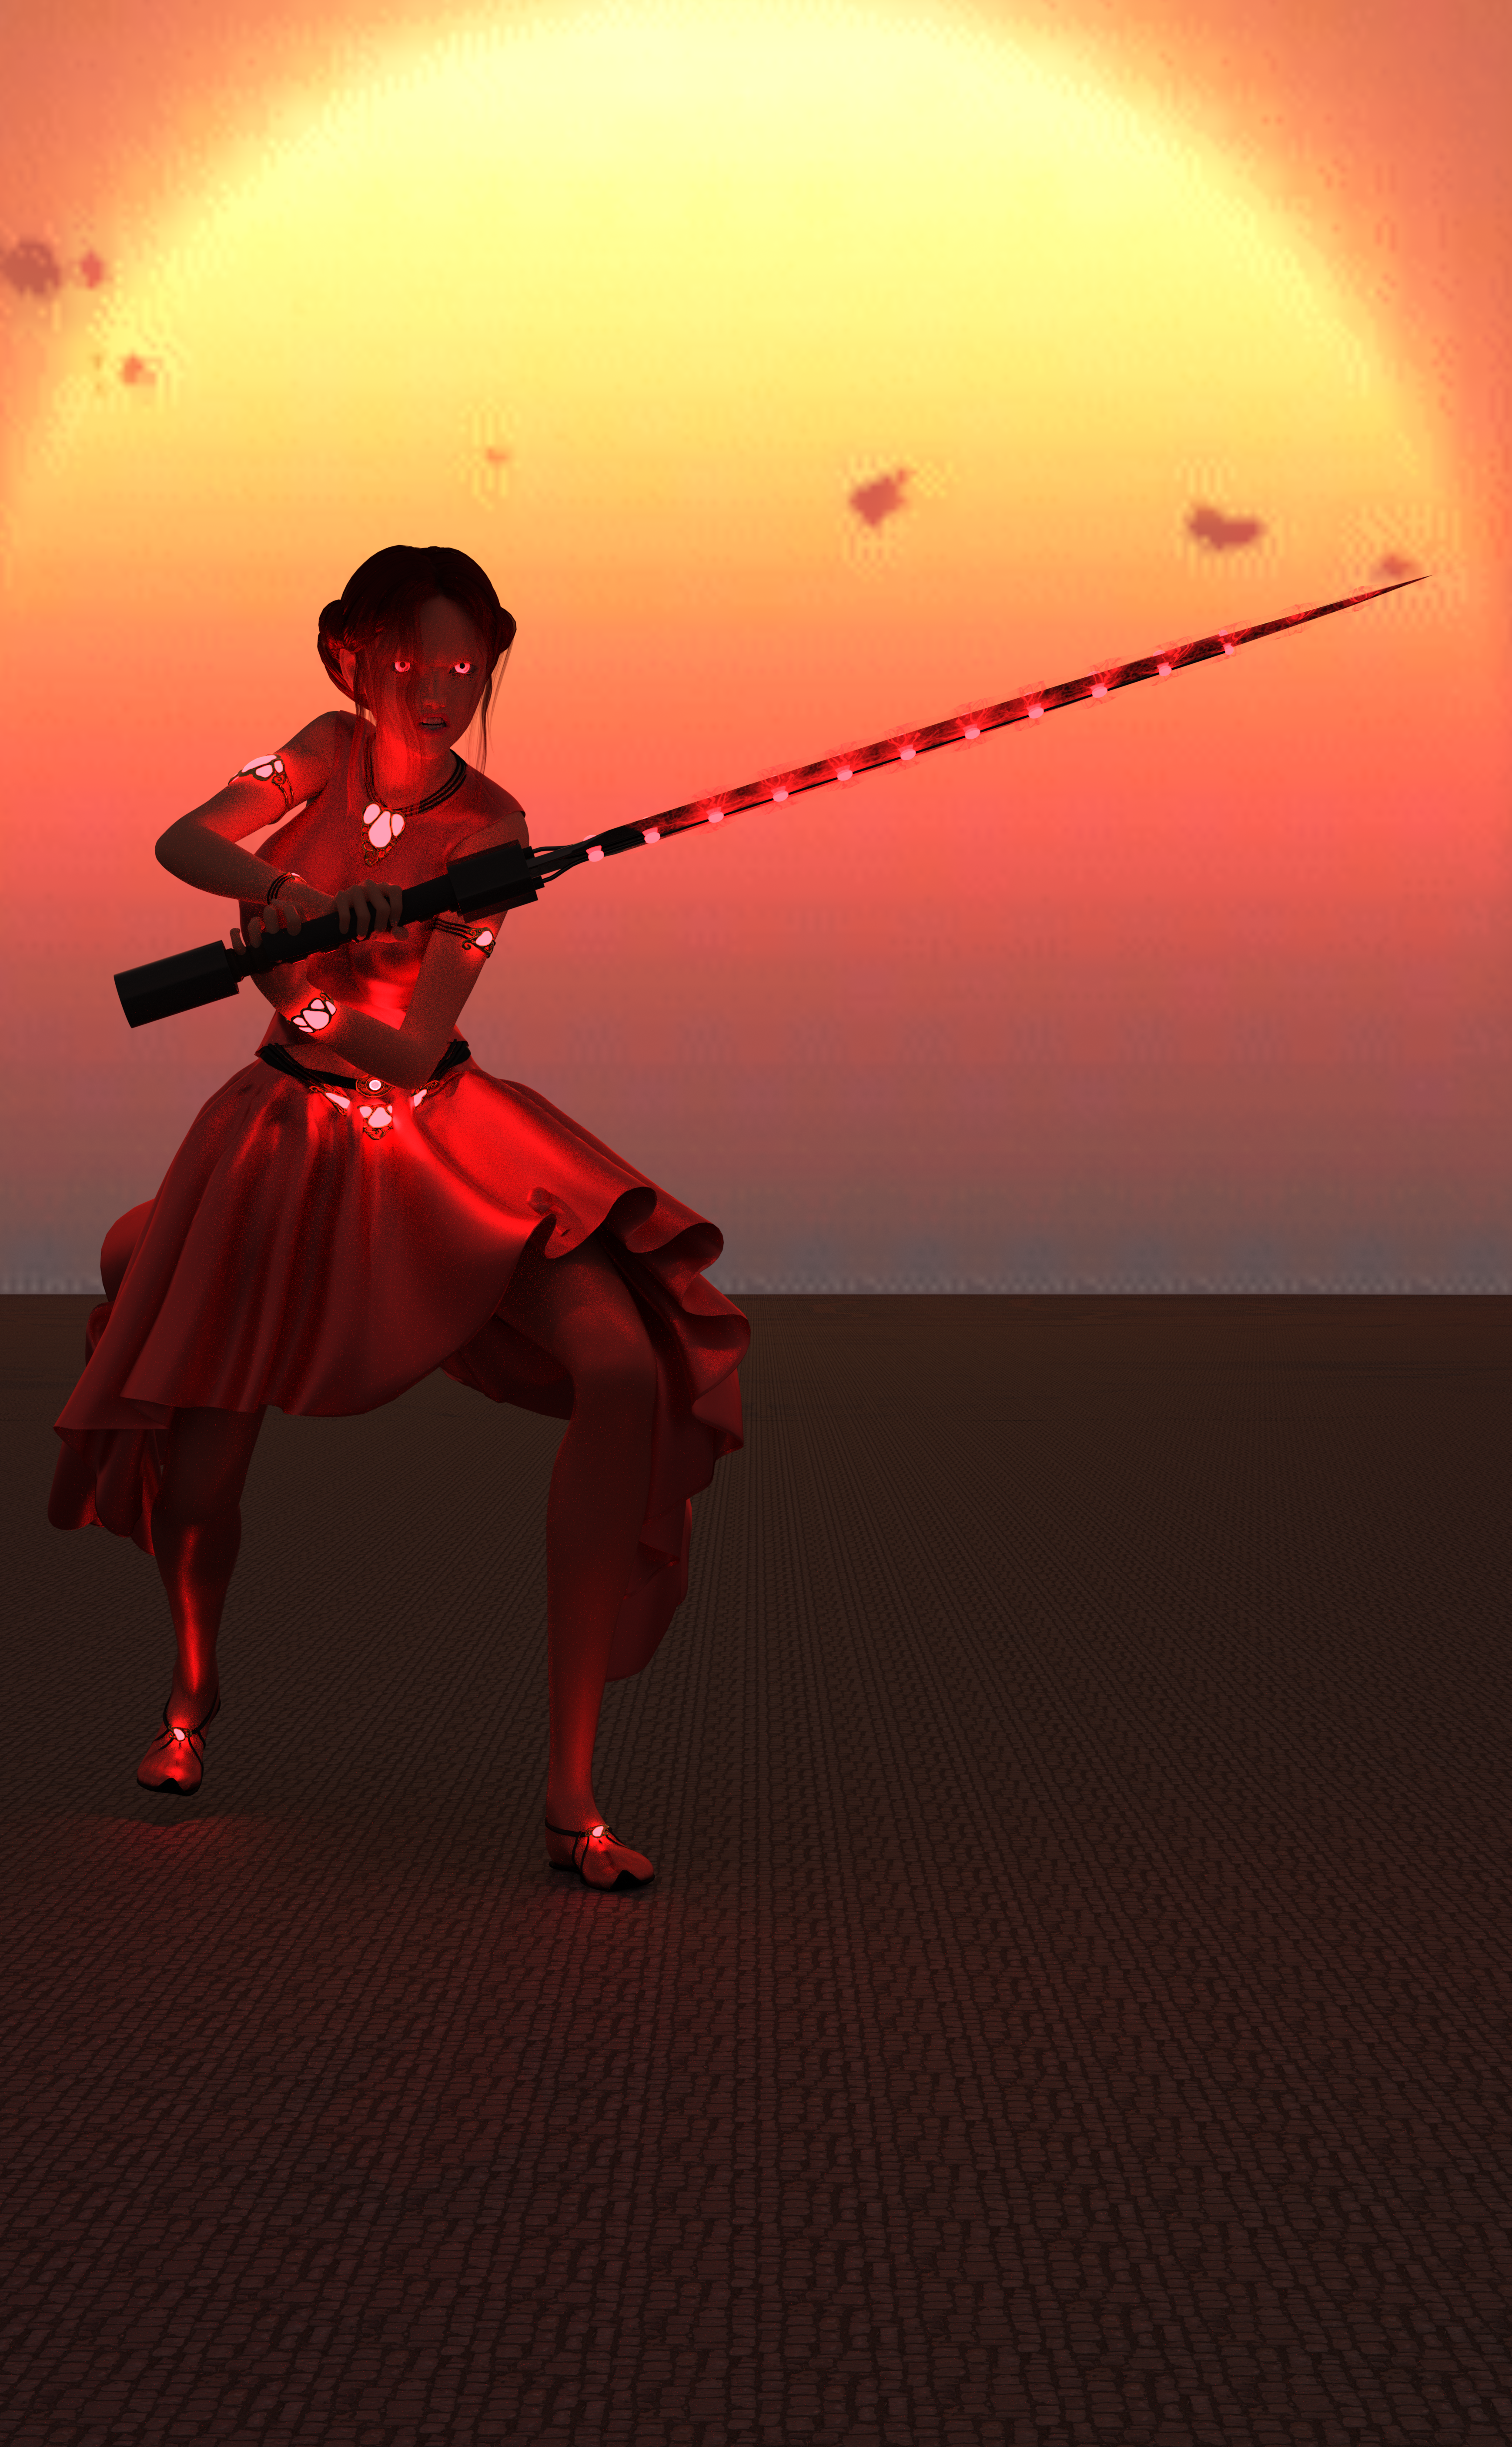 A woman with red clothes, red hair, a sword charged with red magic, and glowing red eyes!